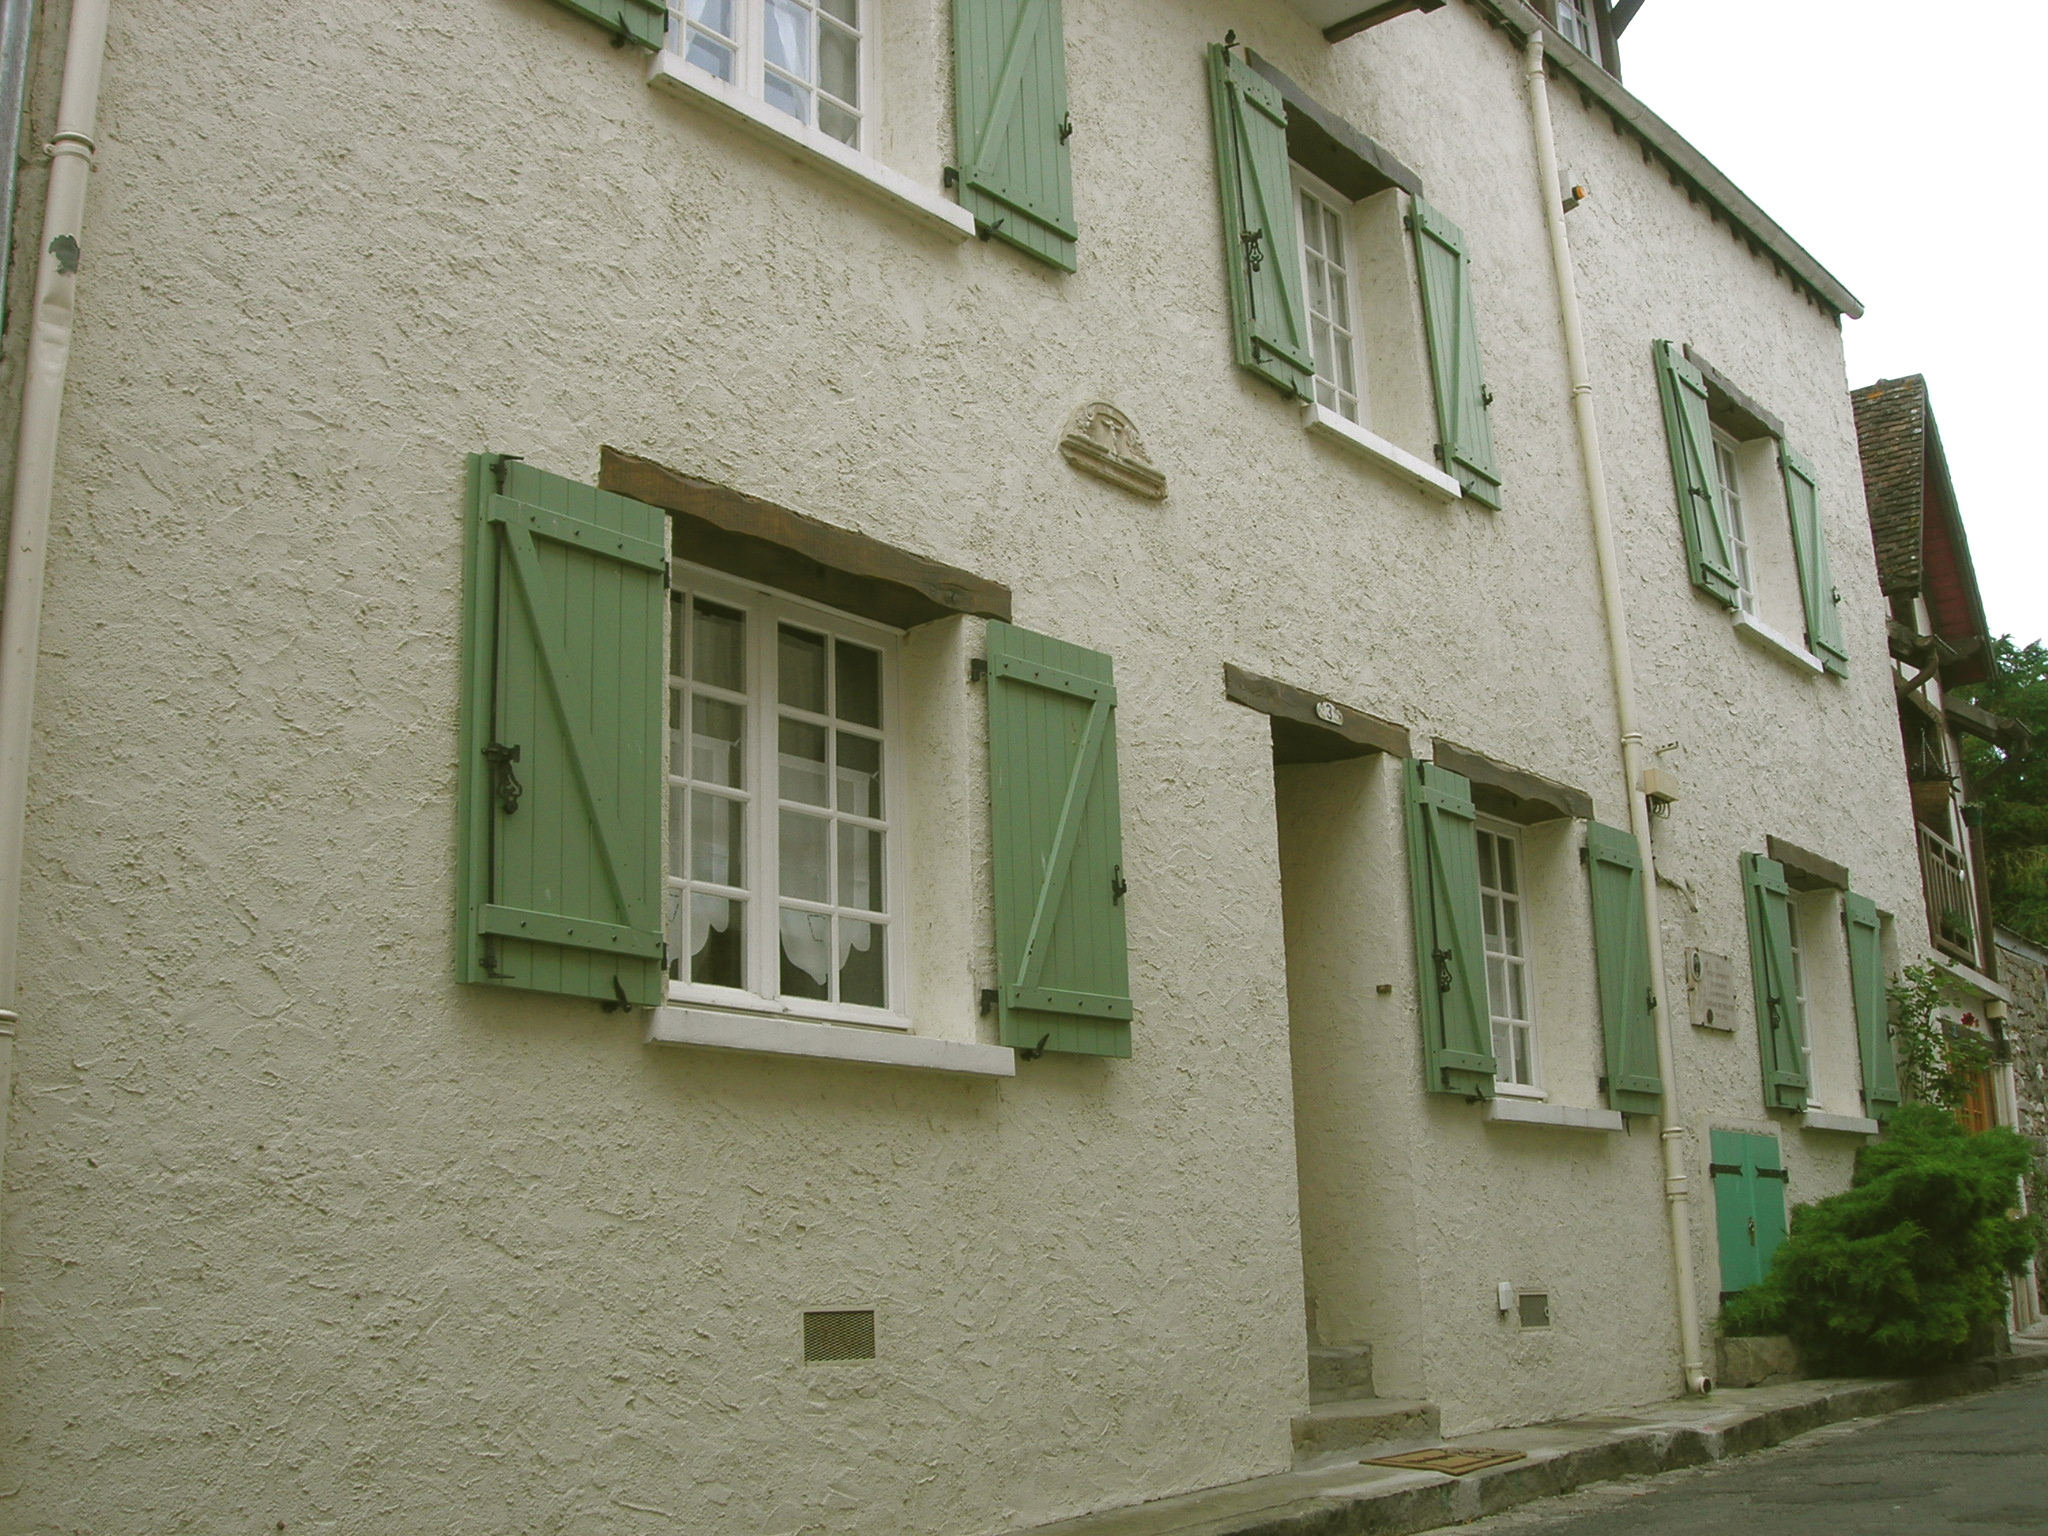 Django´s House in Samois sur Seine, France